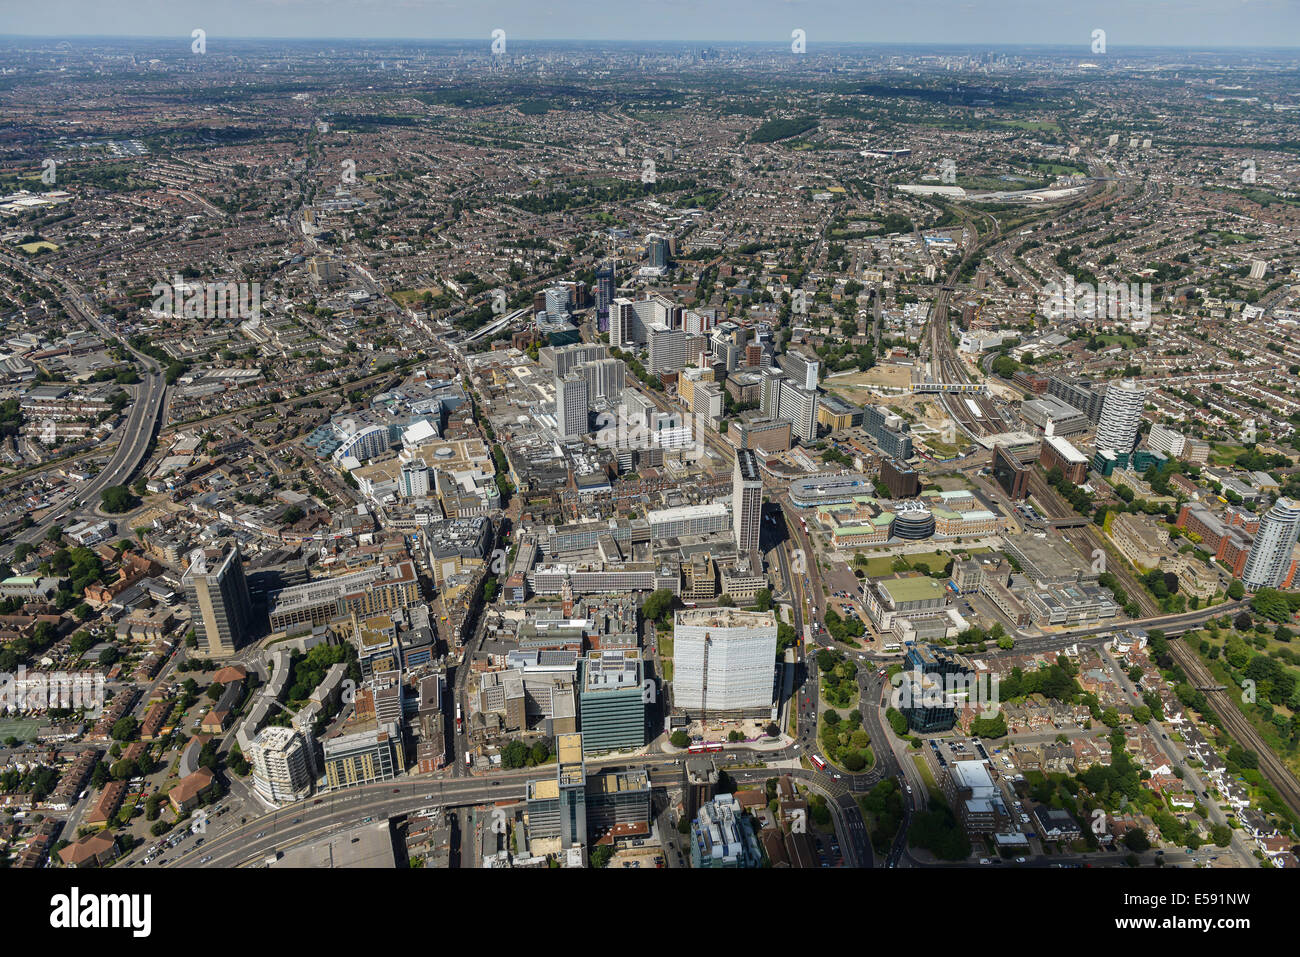 An aerial view of Croydon showing the town centre with the tall buildings of Central London visible in the distance. - Stock Image